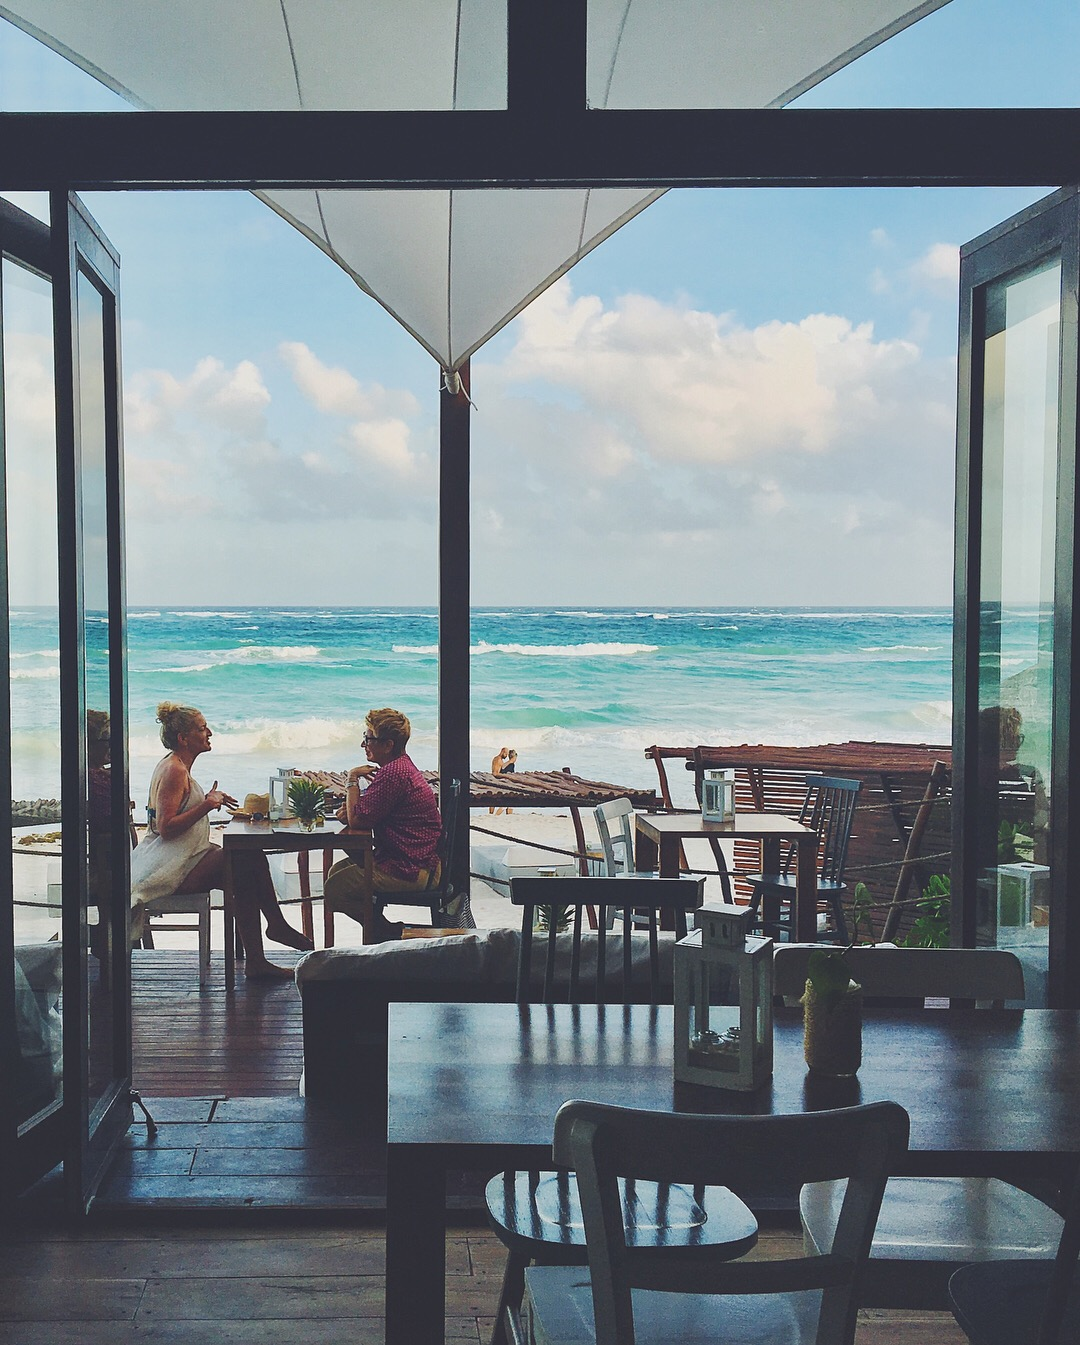 Lunch View @ The Real Coconut, Sanara